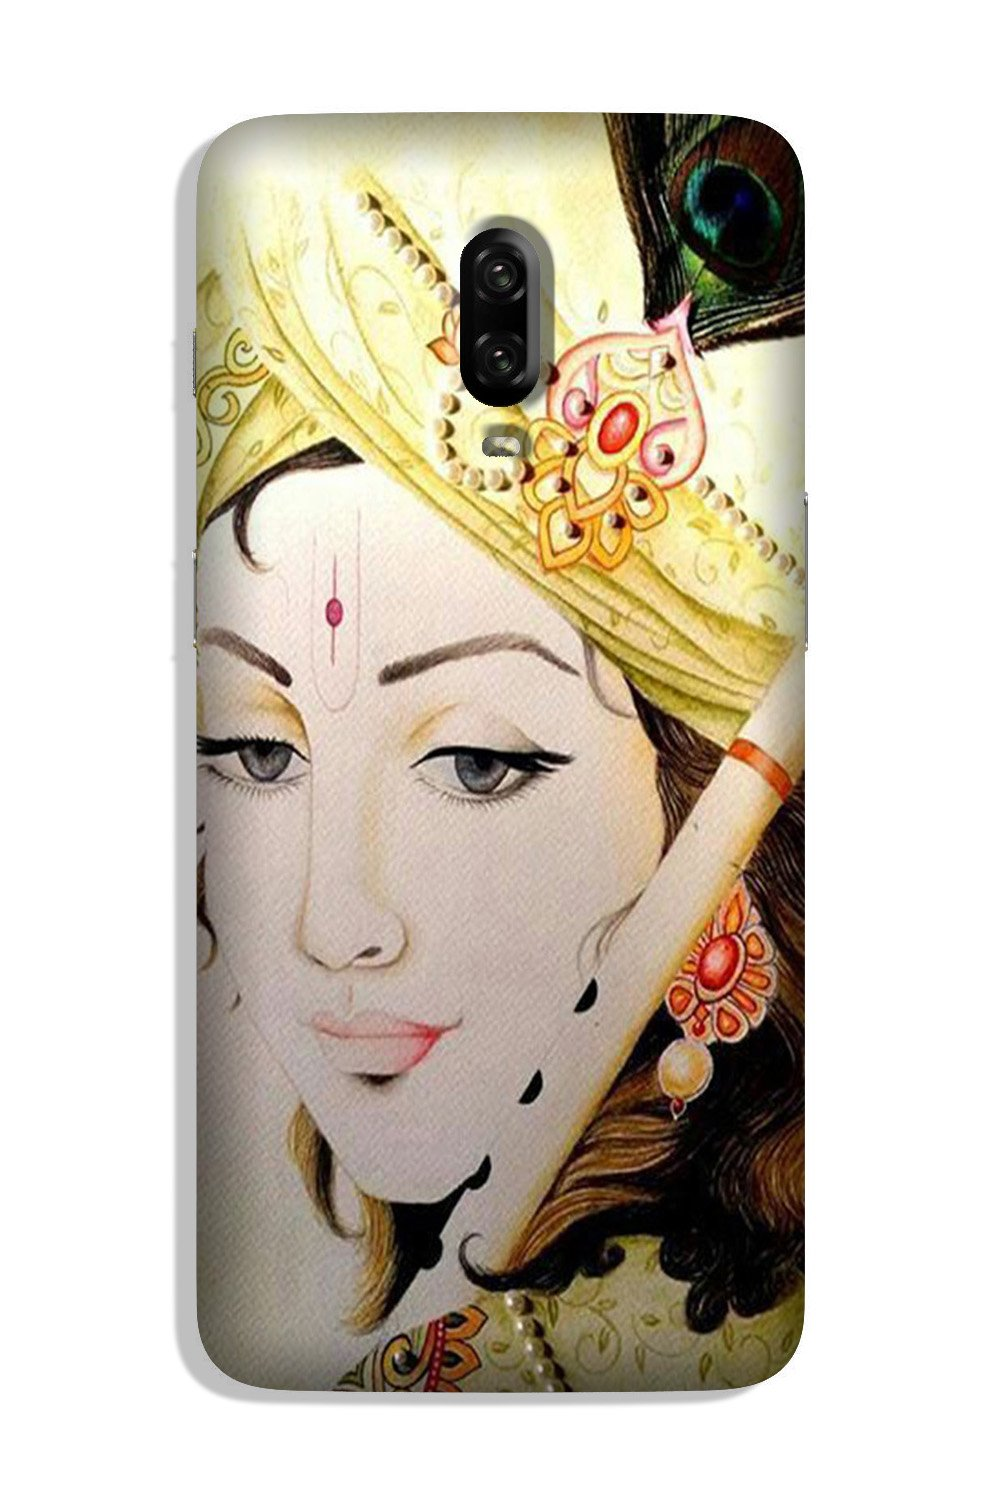 Krishna Case for OnePlus 6T (Design No. 291)